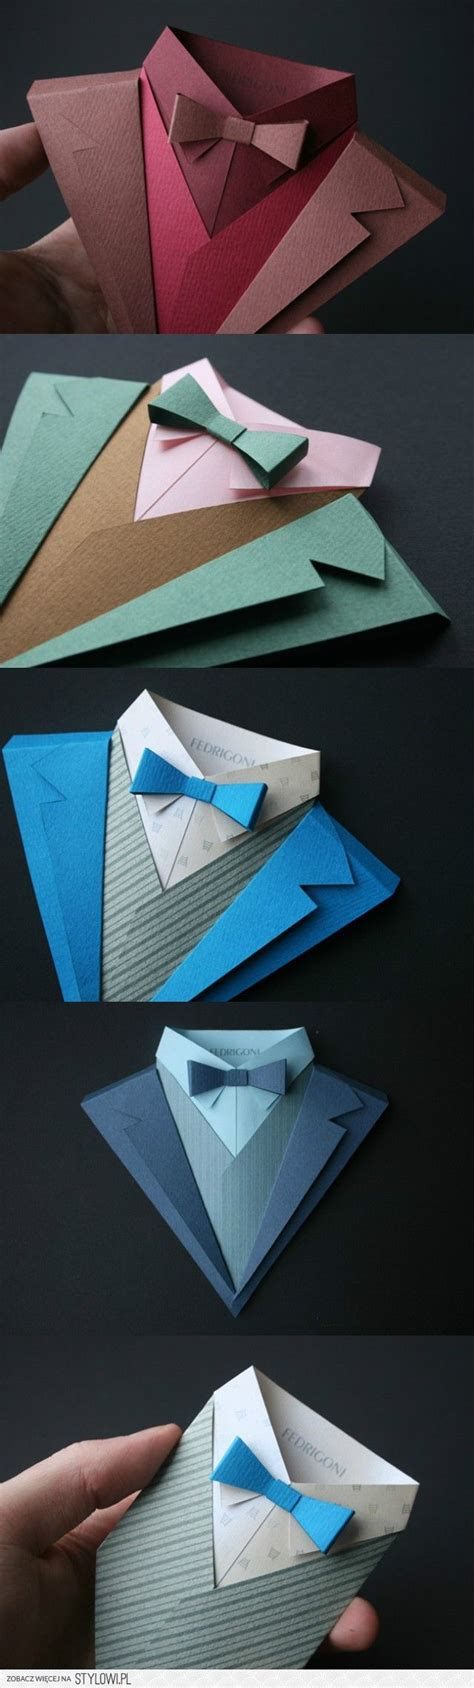 how to make a suit card tuxedo cards etiquette invitations and printables